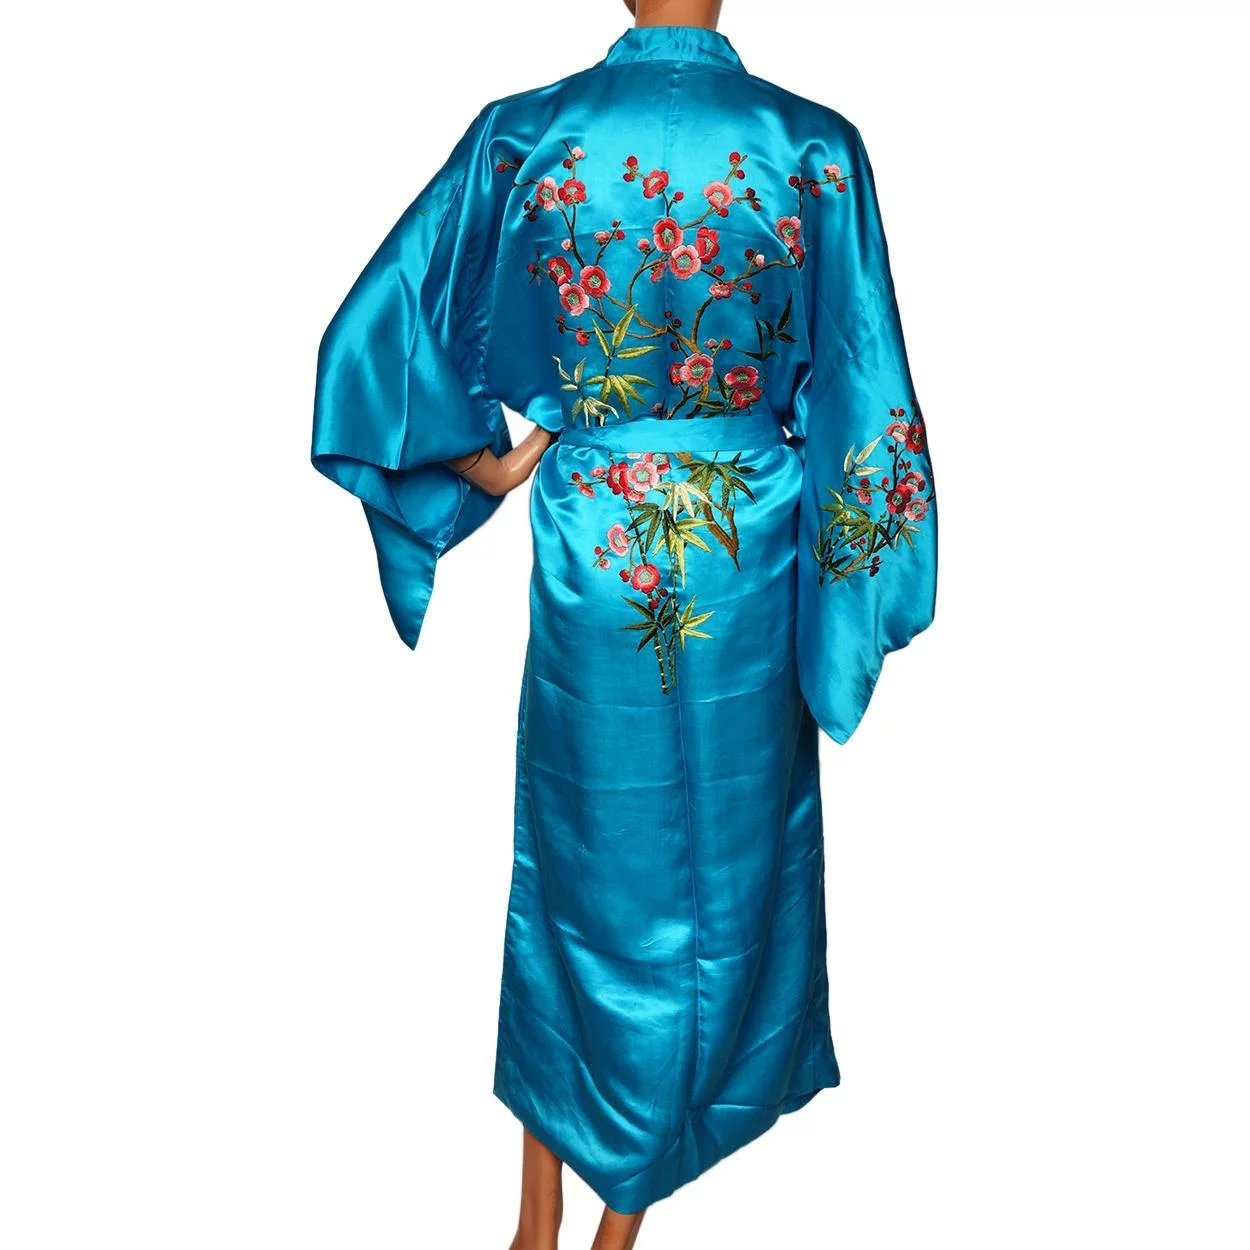 6719779a2788 Vintage 1960s Blue Chinese Silk Dressing Gown Robe - Cherry Blossom :  Poppy's Vintage Clothing | Ruby Lane